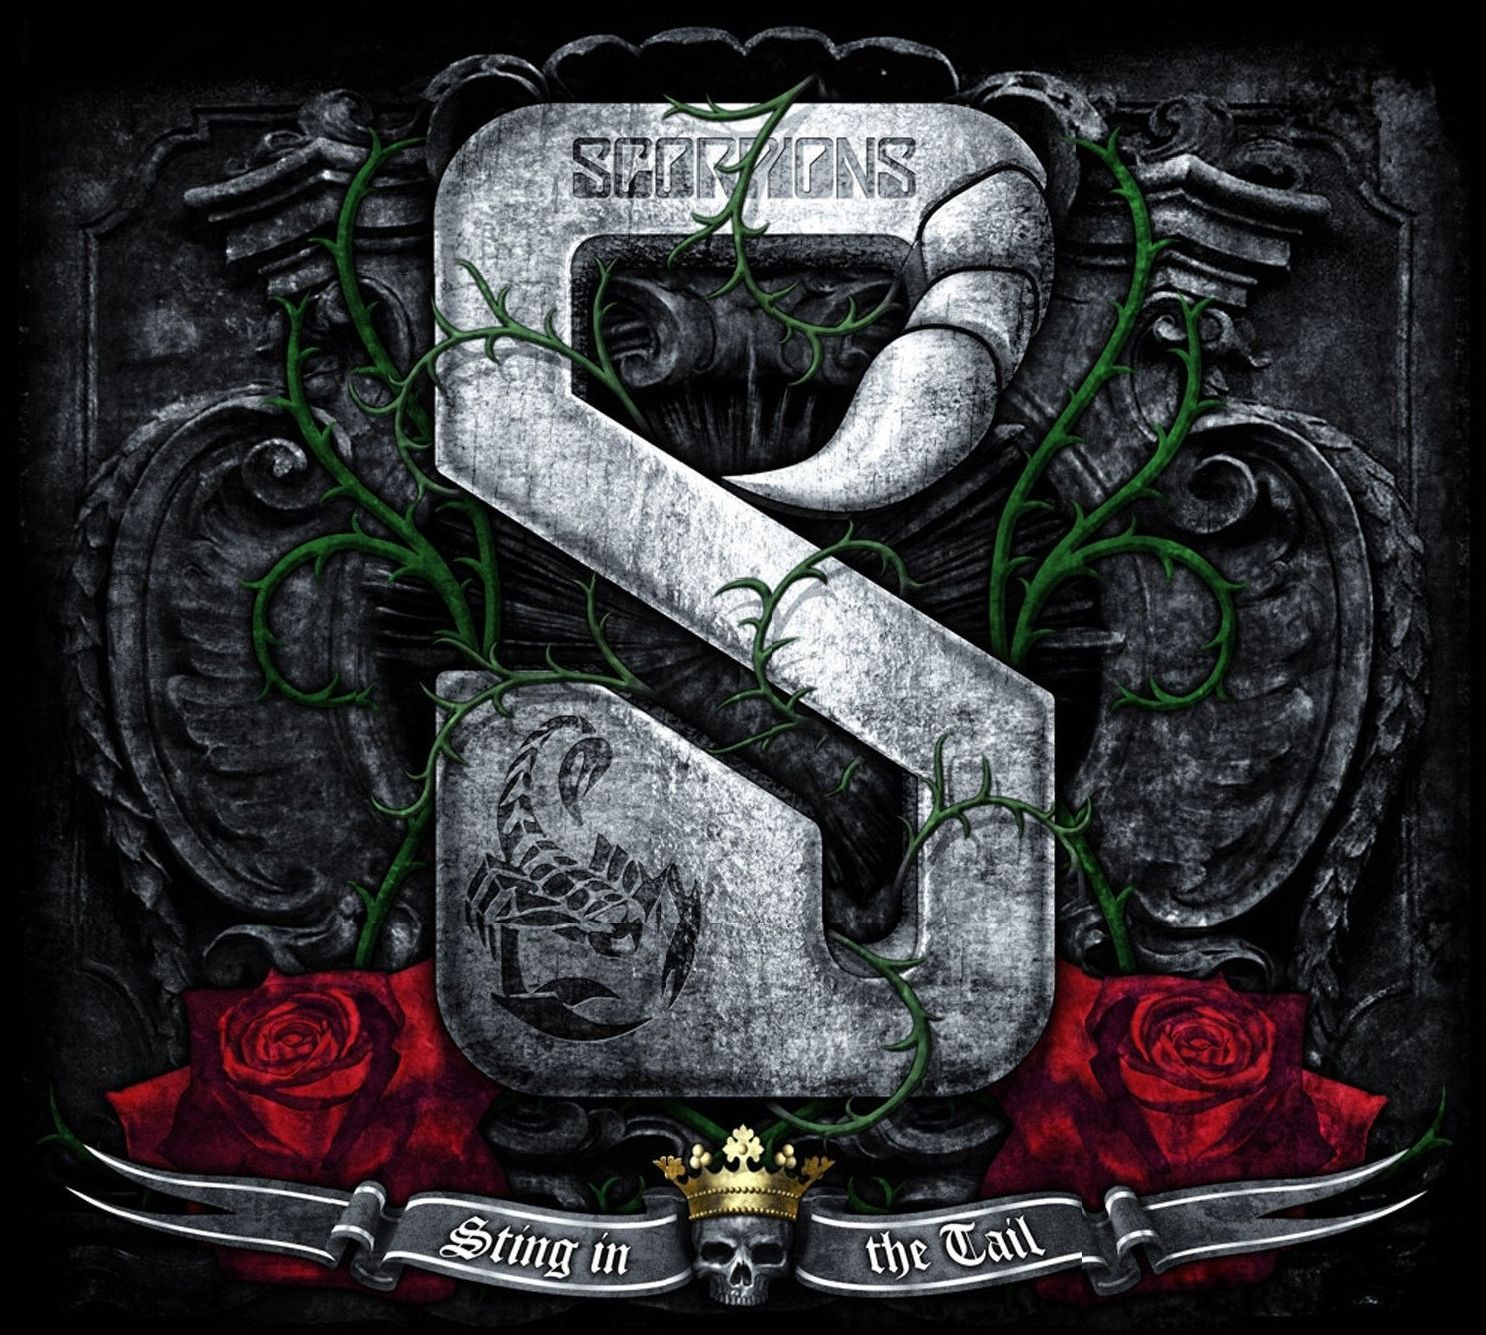 Scorpions - Sting in the Tail (CD) - 1